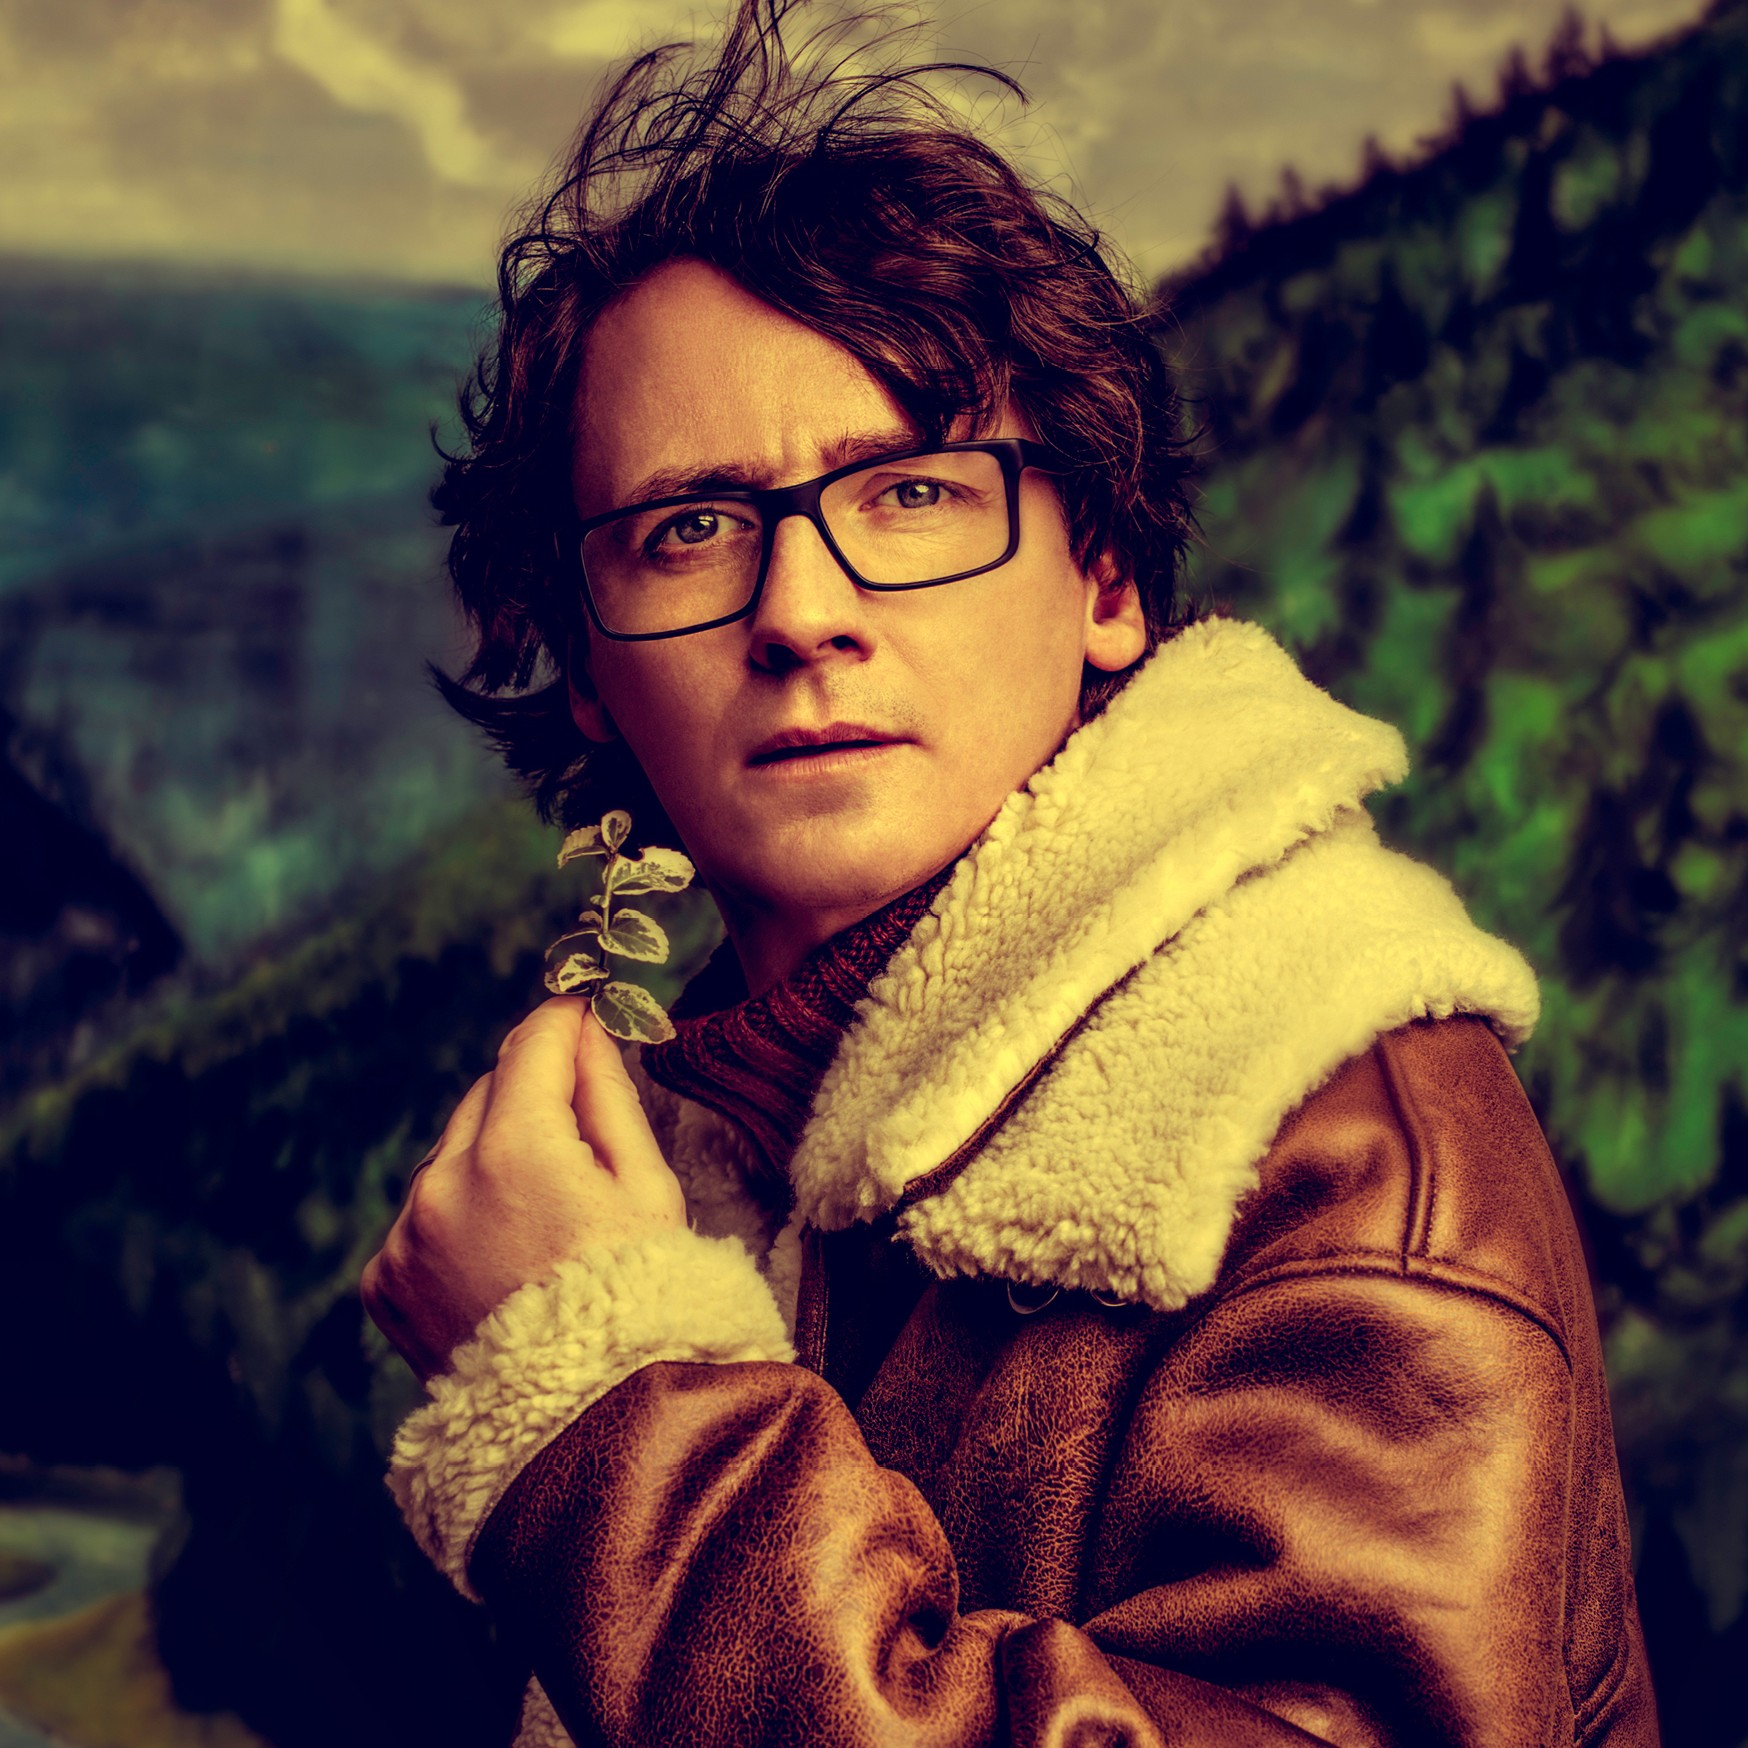 Ed Byrne wears a shearling jacked and holds a leaf as he is pictured on a mountainside.